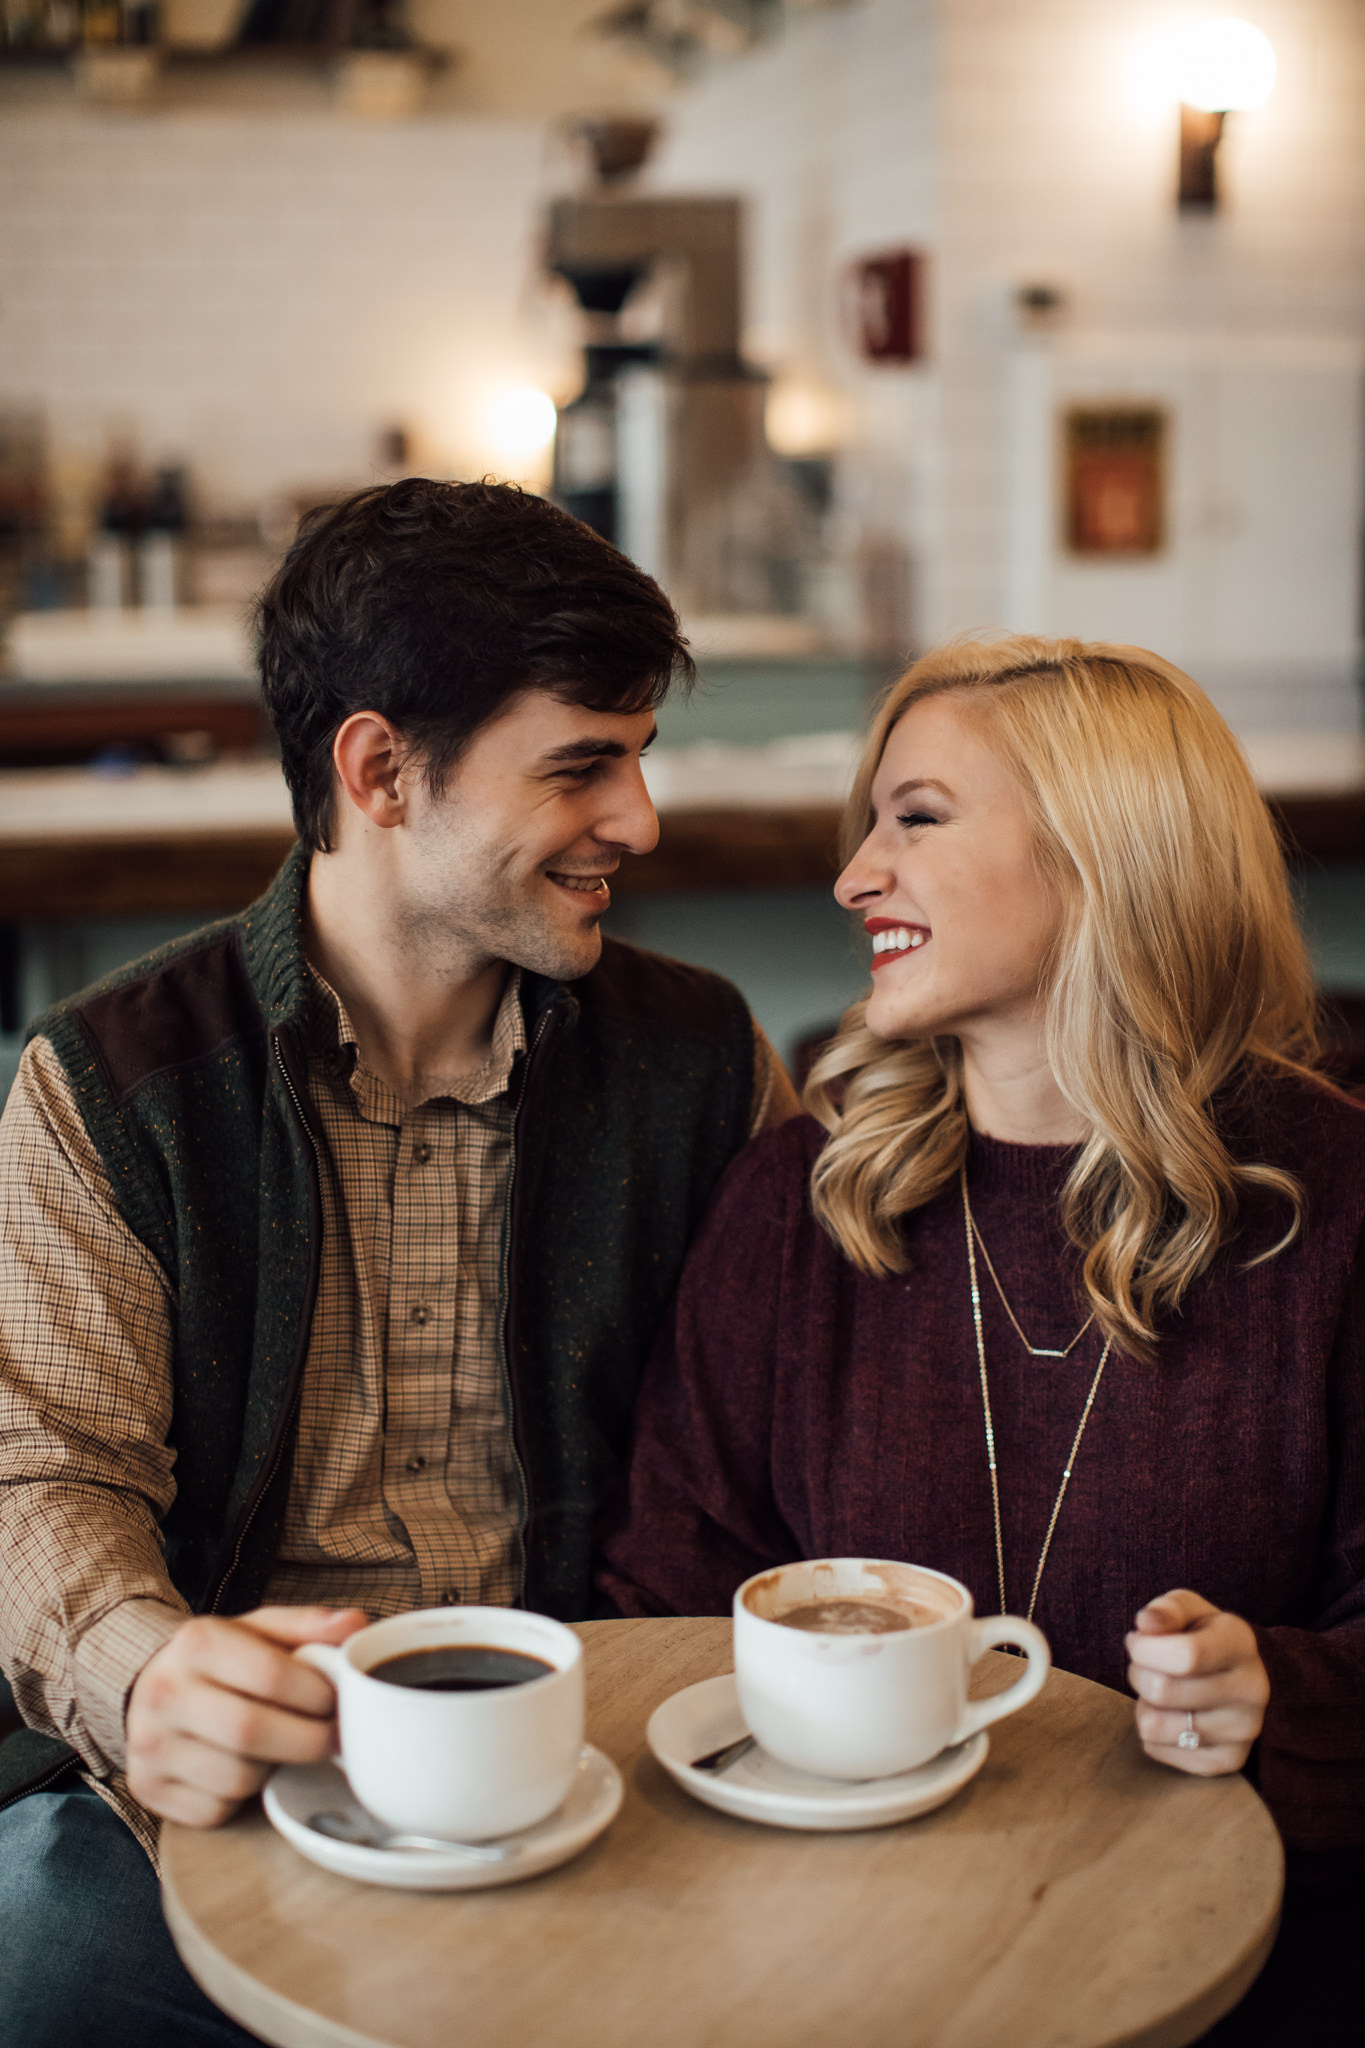 memphis-wedding-photographer-cassie-cook-photography-cafe-keough-engagement-photoshoot-coffee-engagement-18.jpg